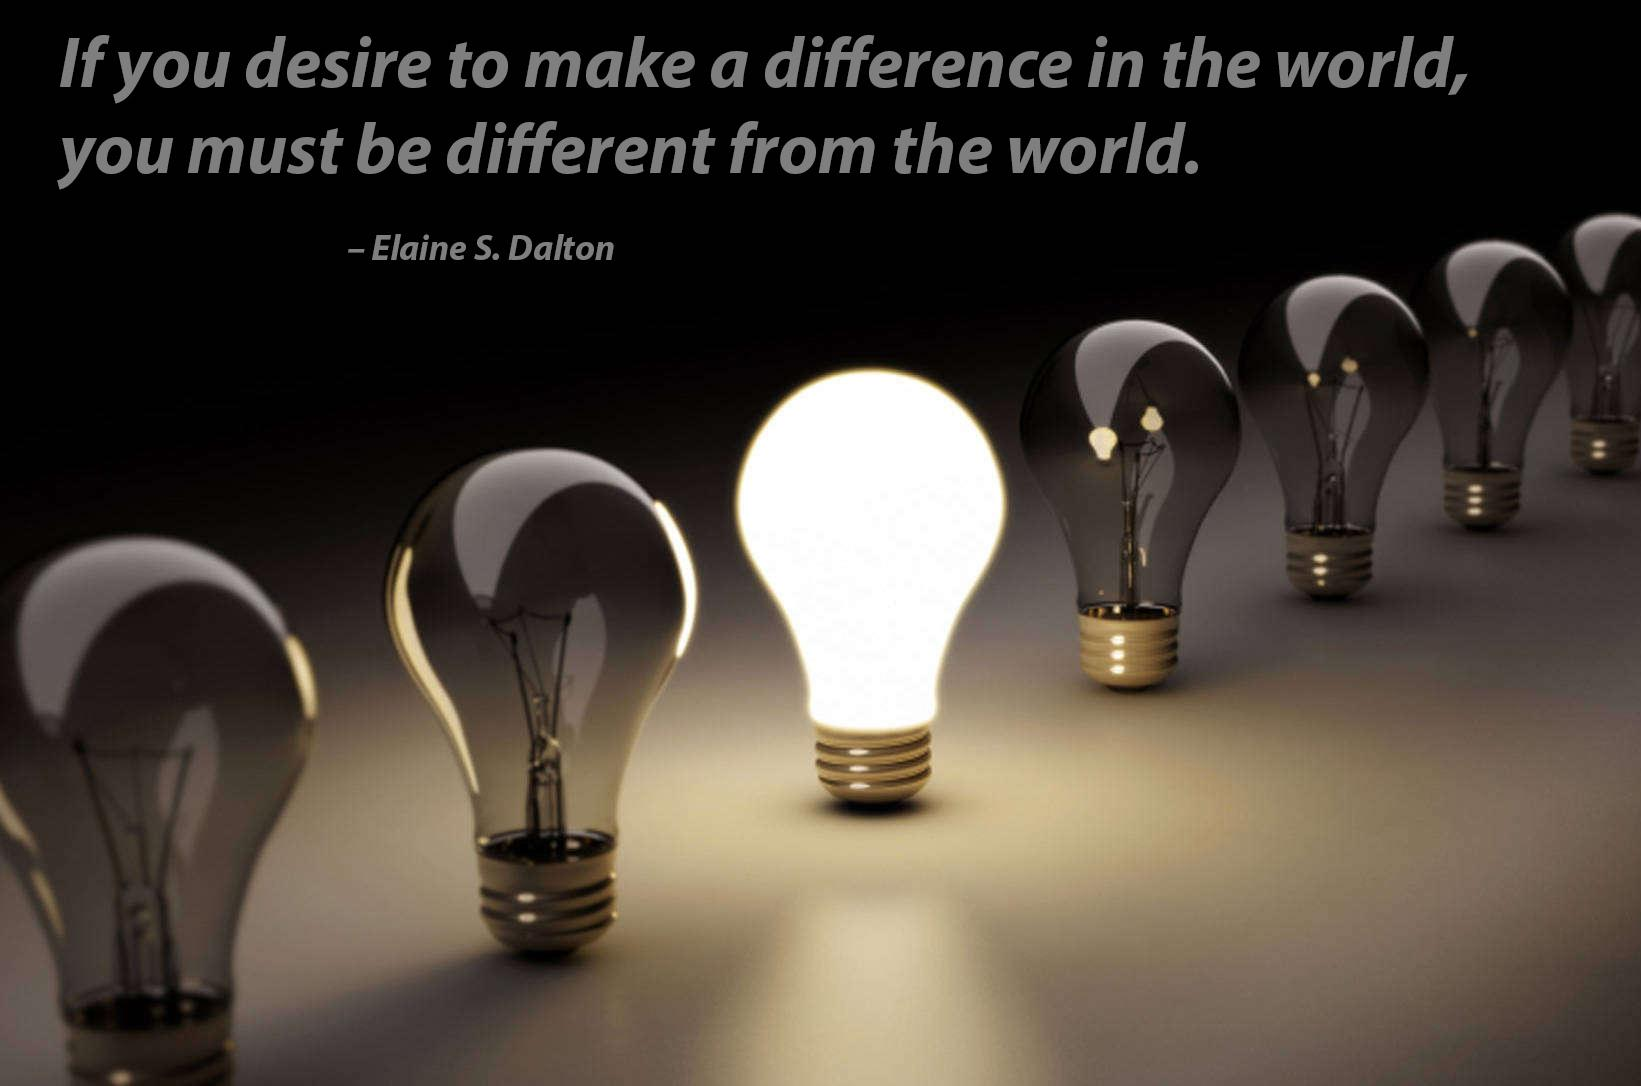 """If you desire to make a difference in the world, you must be different from the world."" – Elaine S. Dalton [OC] [1641×1086]"